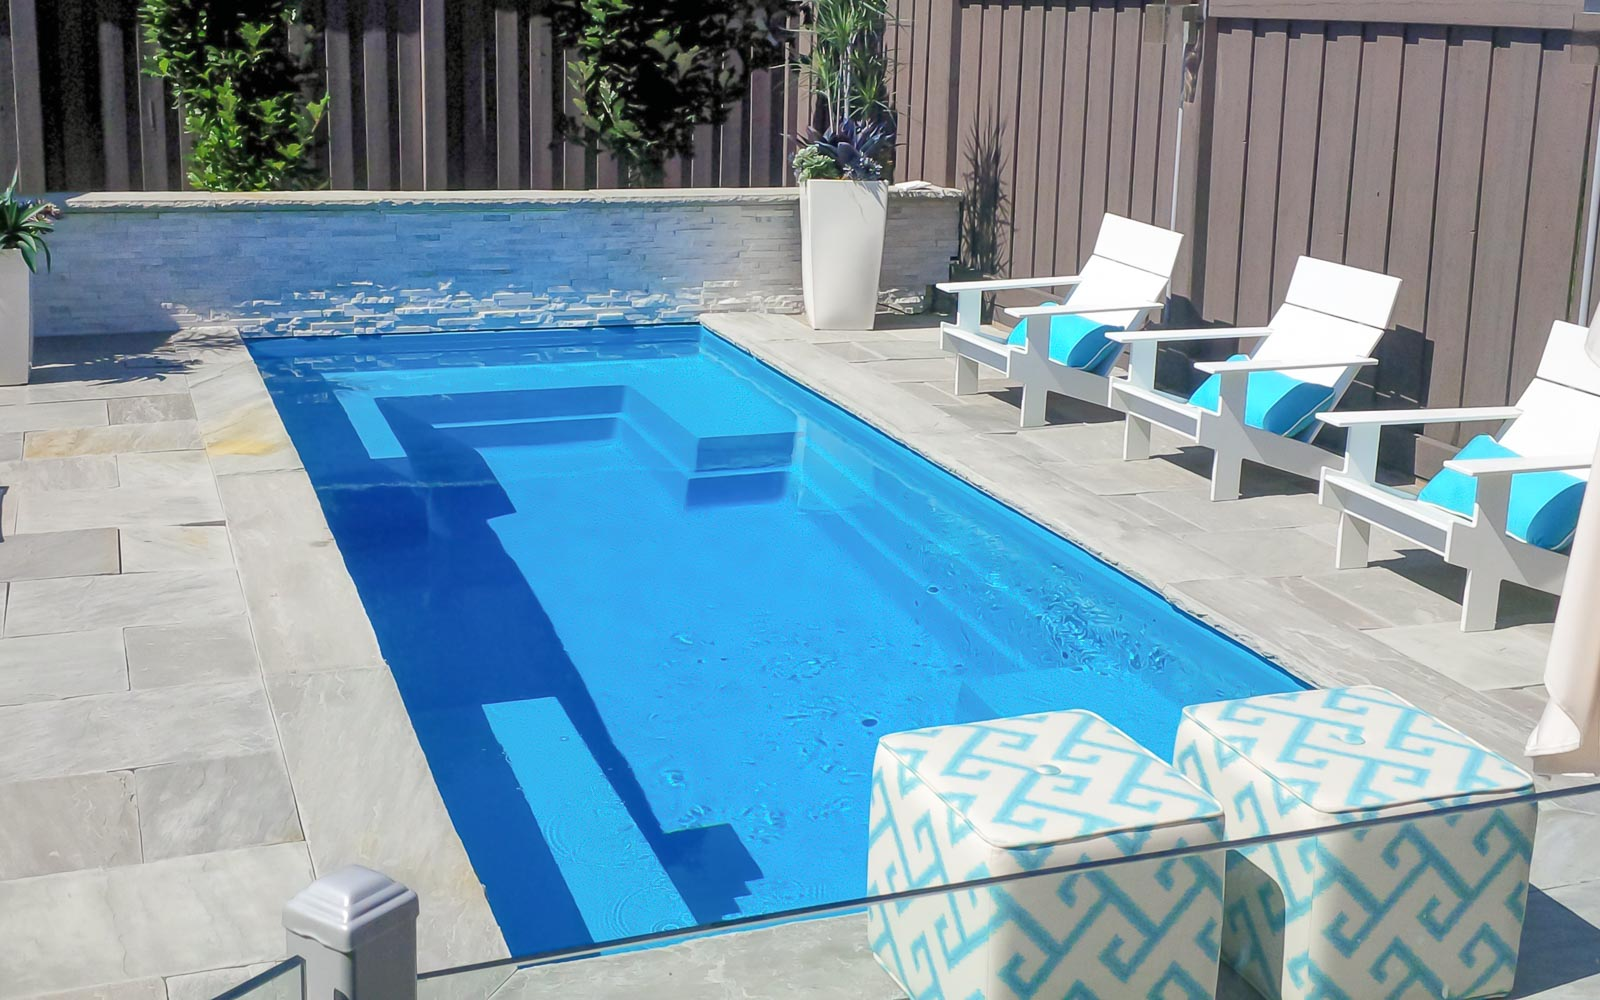 Leisure Pools Palladium Plunge fiberglass swimming pool with built-in bench